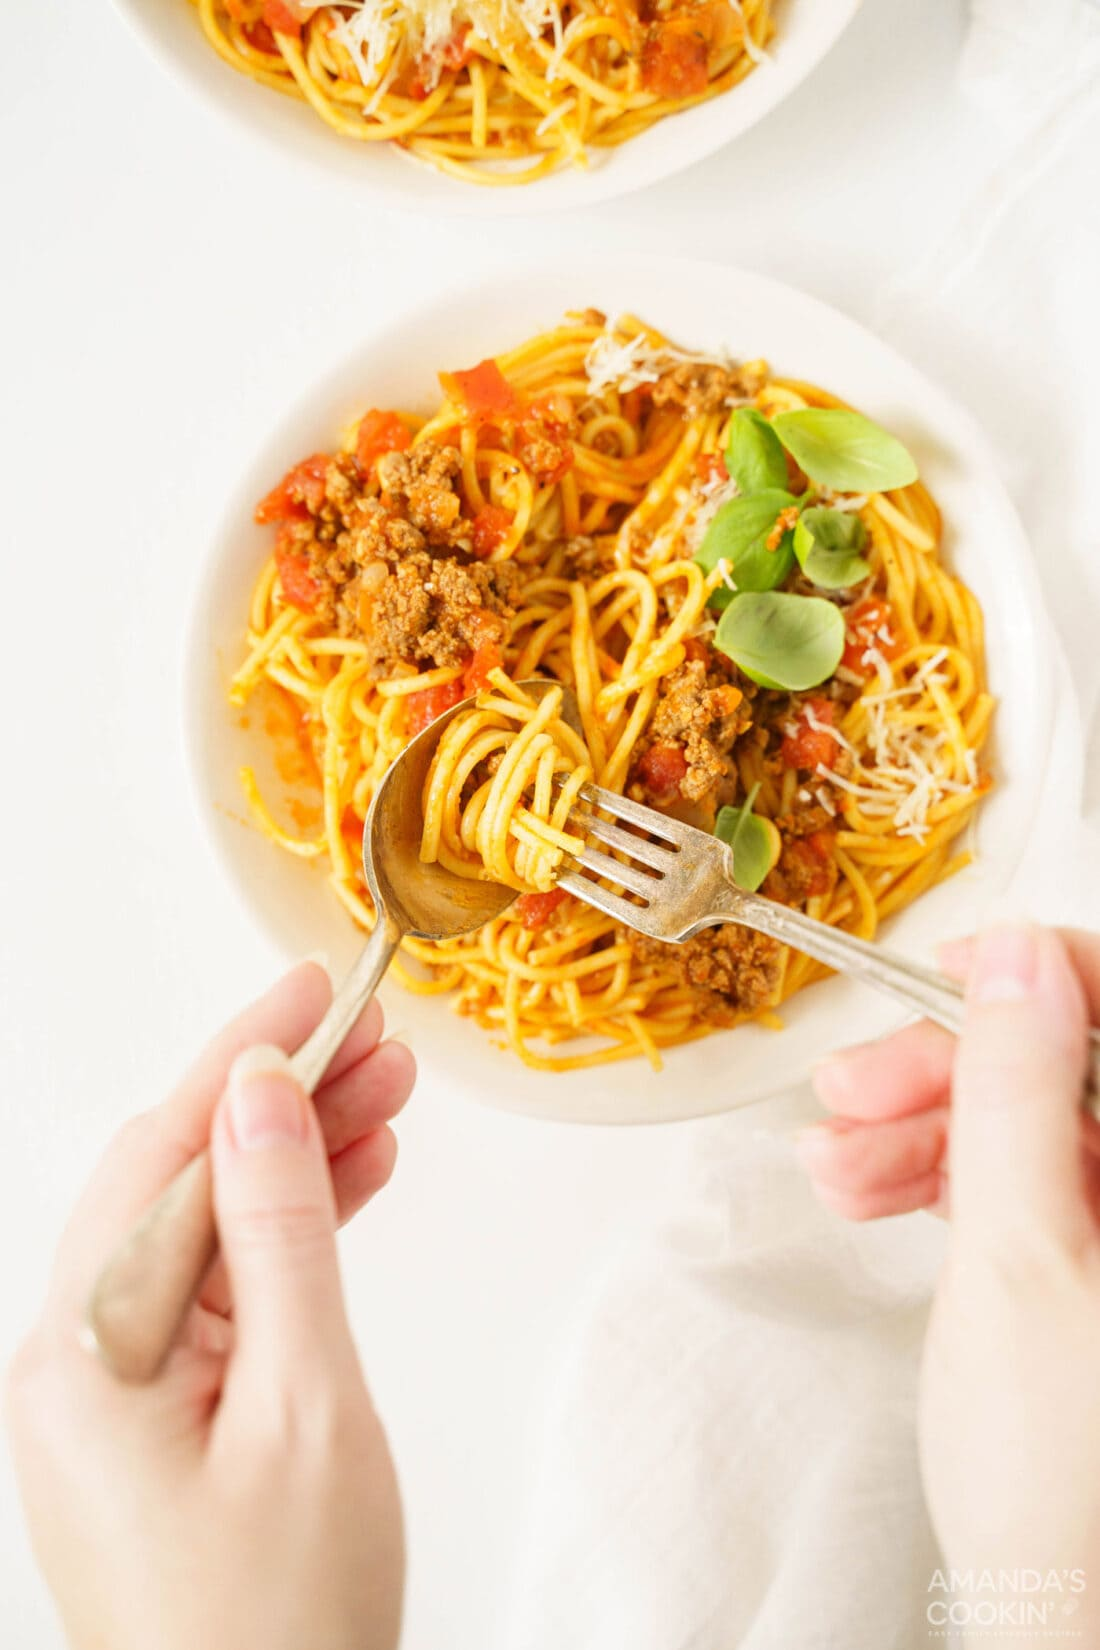 turning fork on spoon to pick up spaghetti noodles